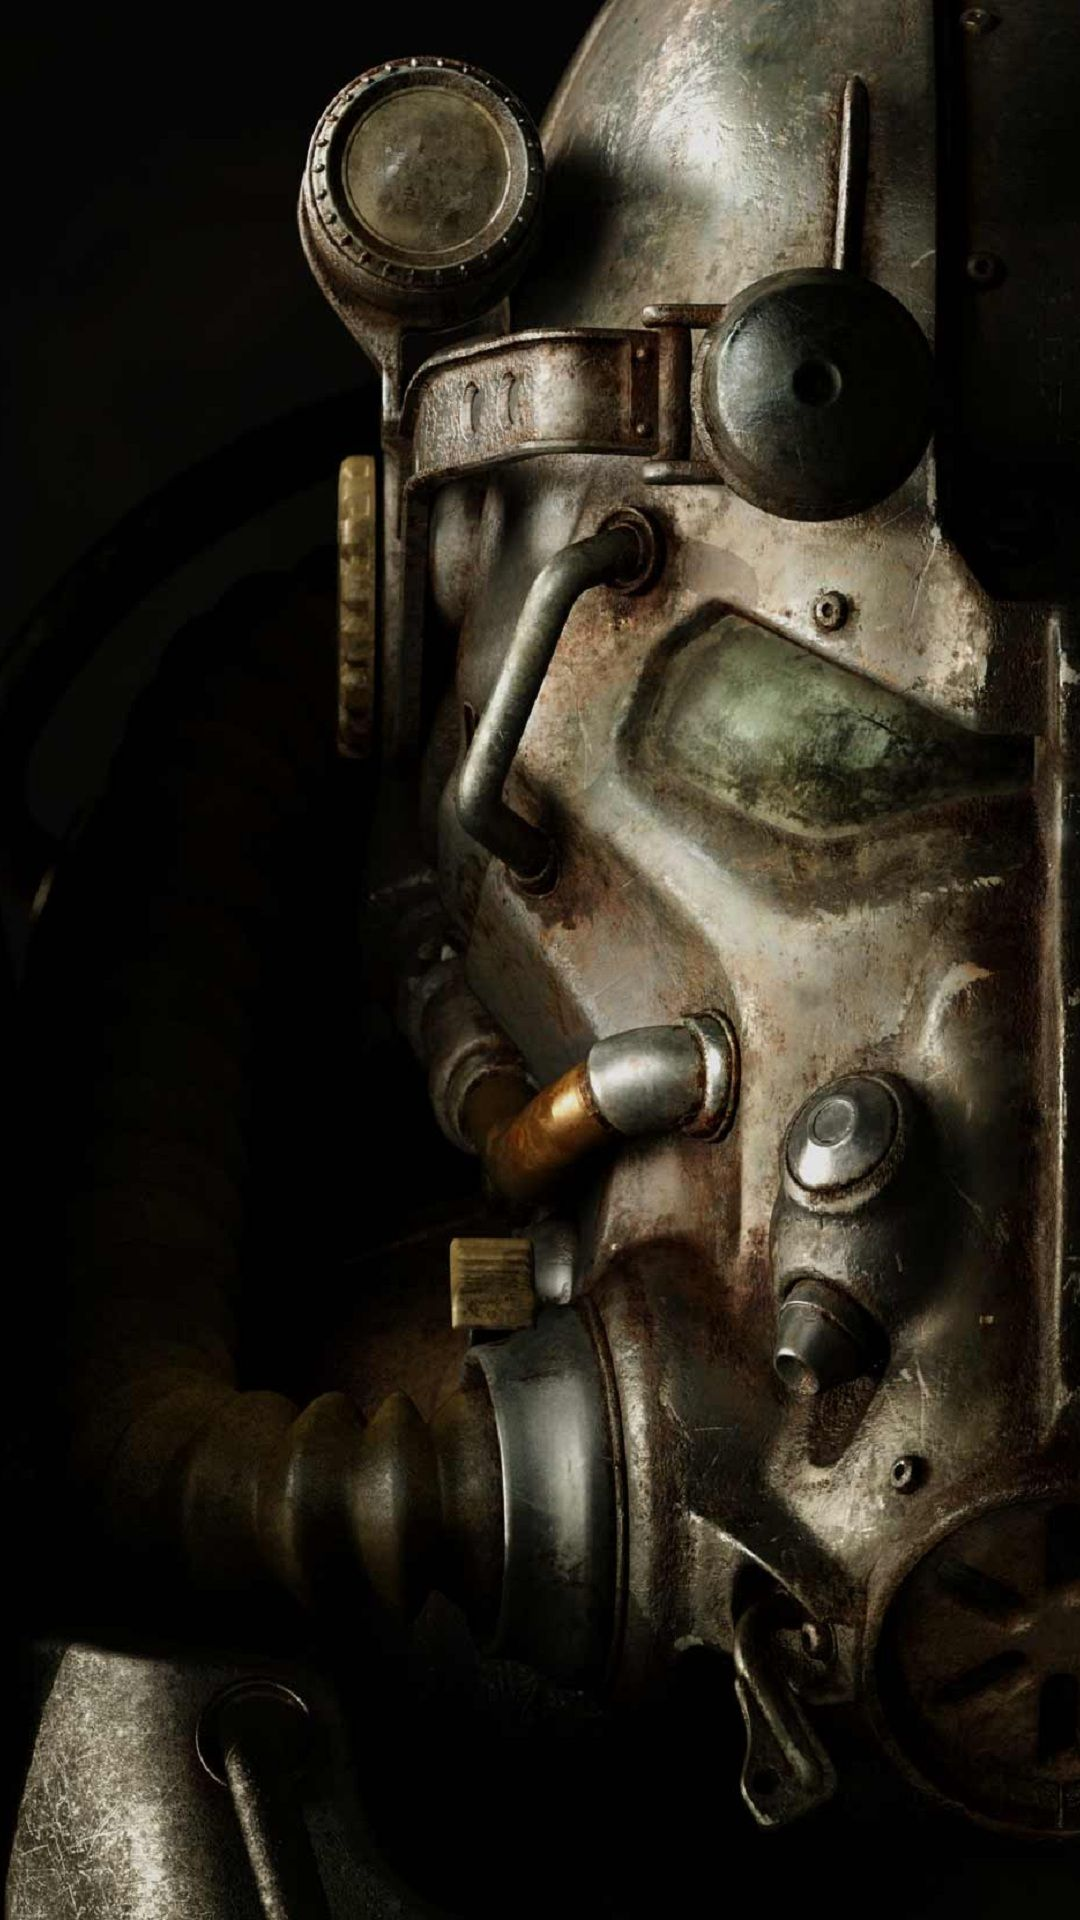 Fallout 4 1080x1920 mobile wallpapers fallout mobile wallpaper search results for fallout wallpaper adorable wallpapers thecheapjerseys Gallery